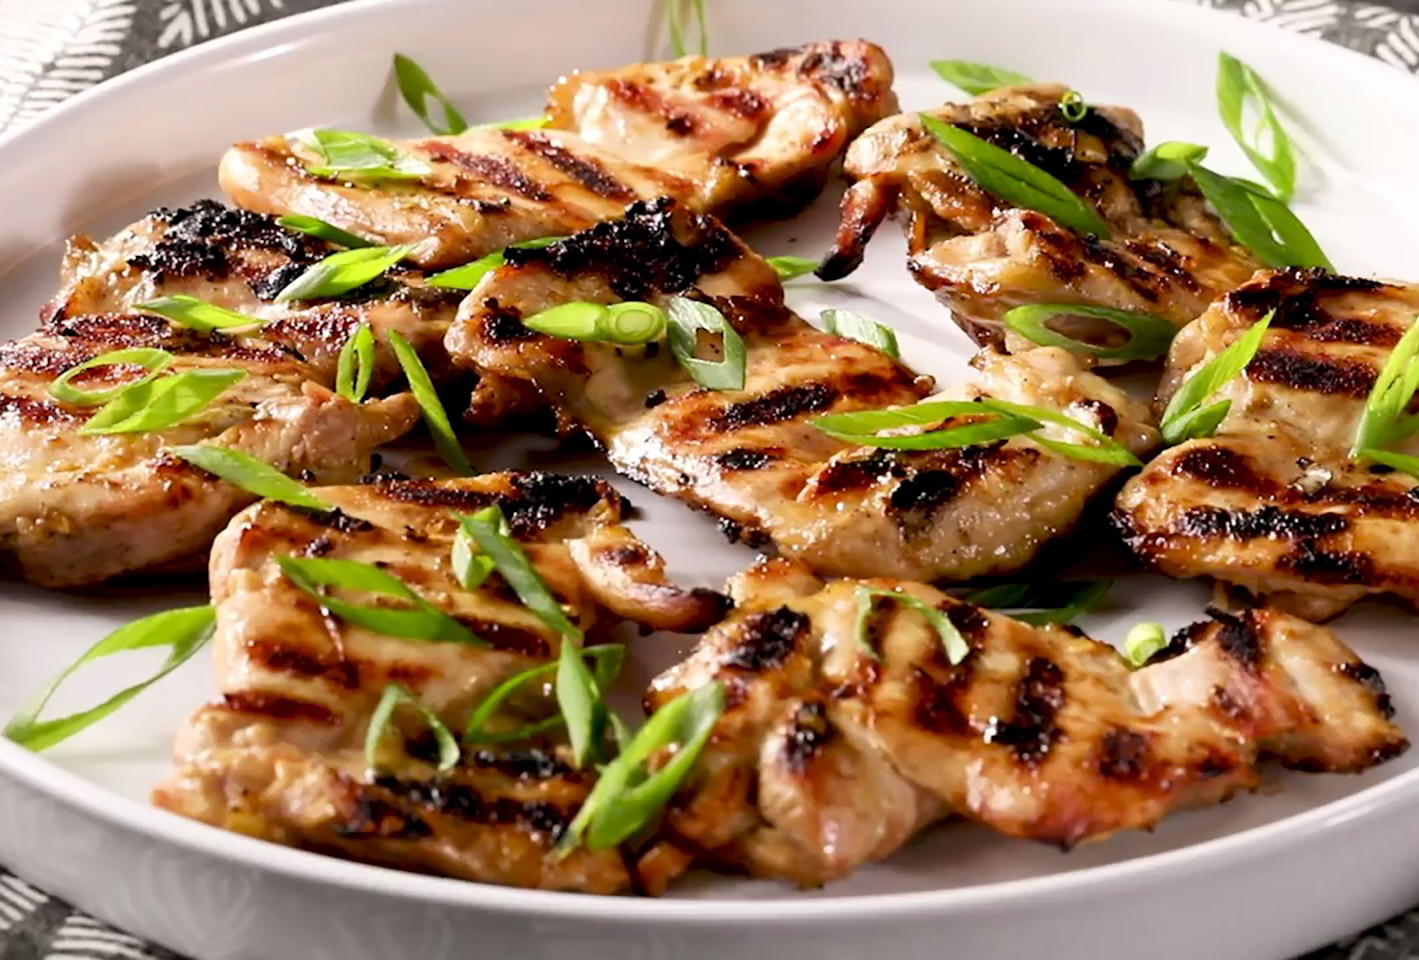 Vietnamese Grilled Lemongrass Chicken Recipe Allrecipes